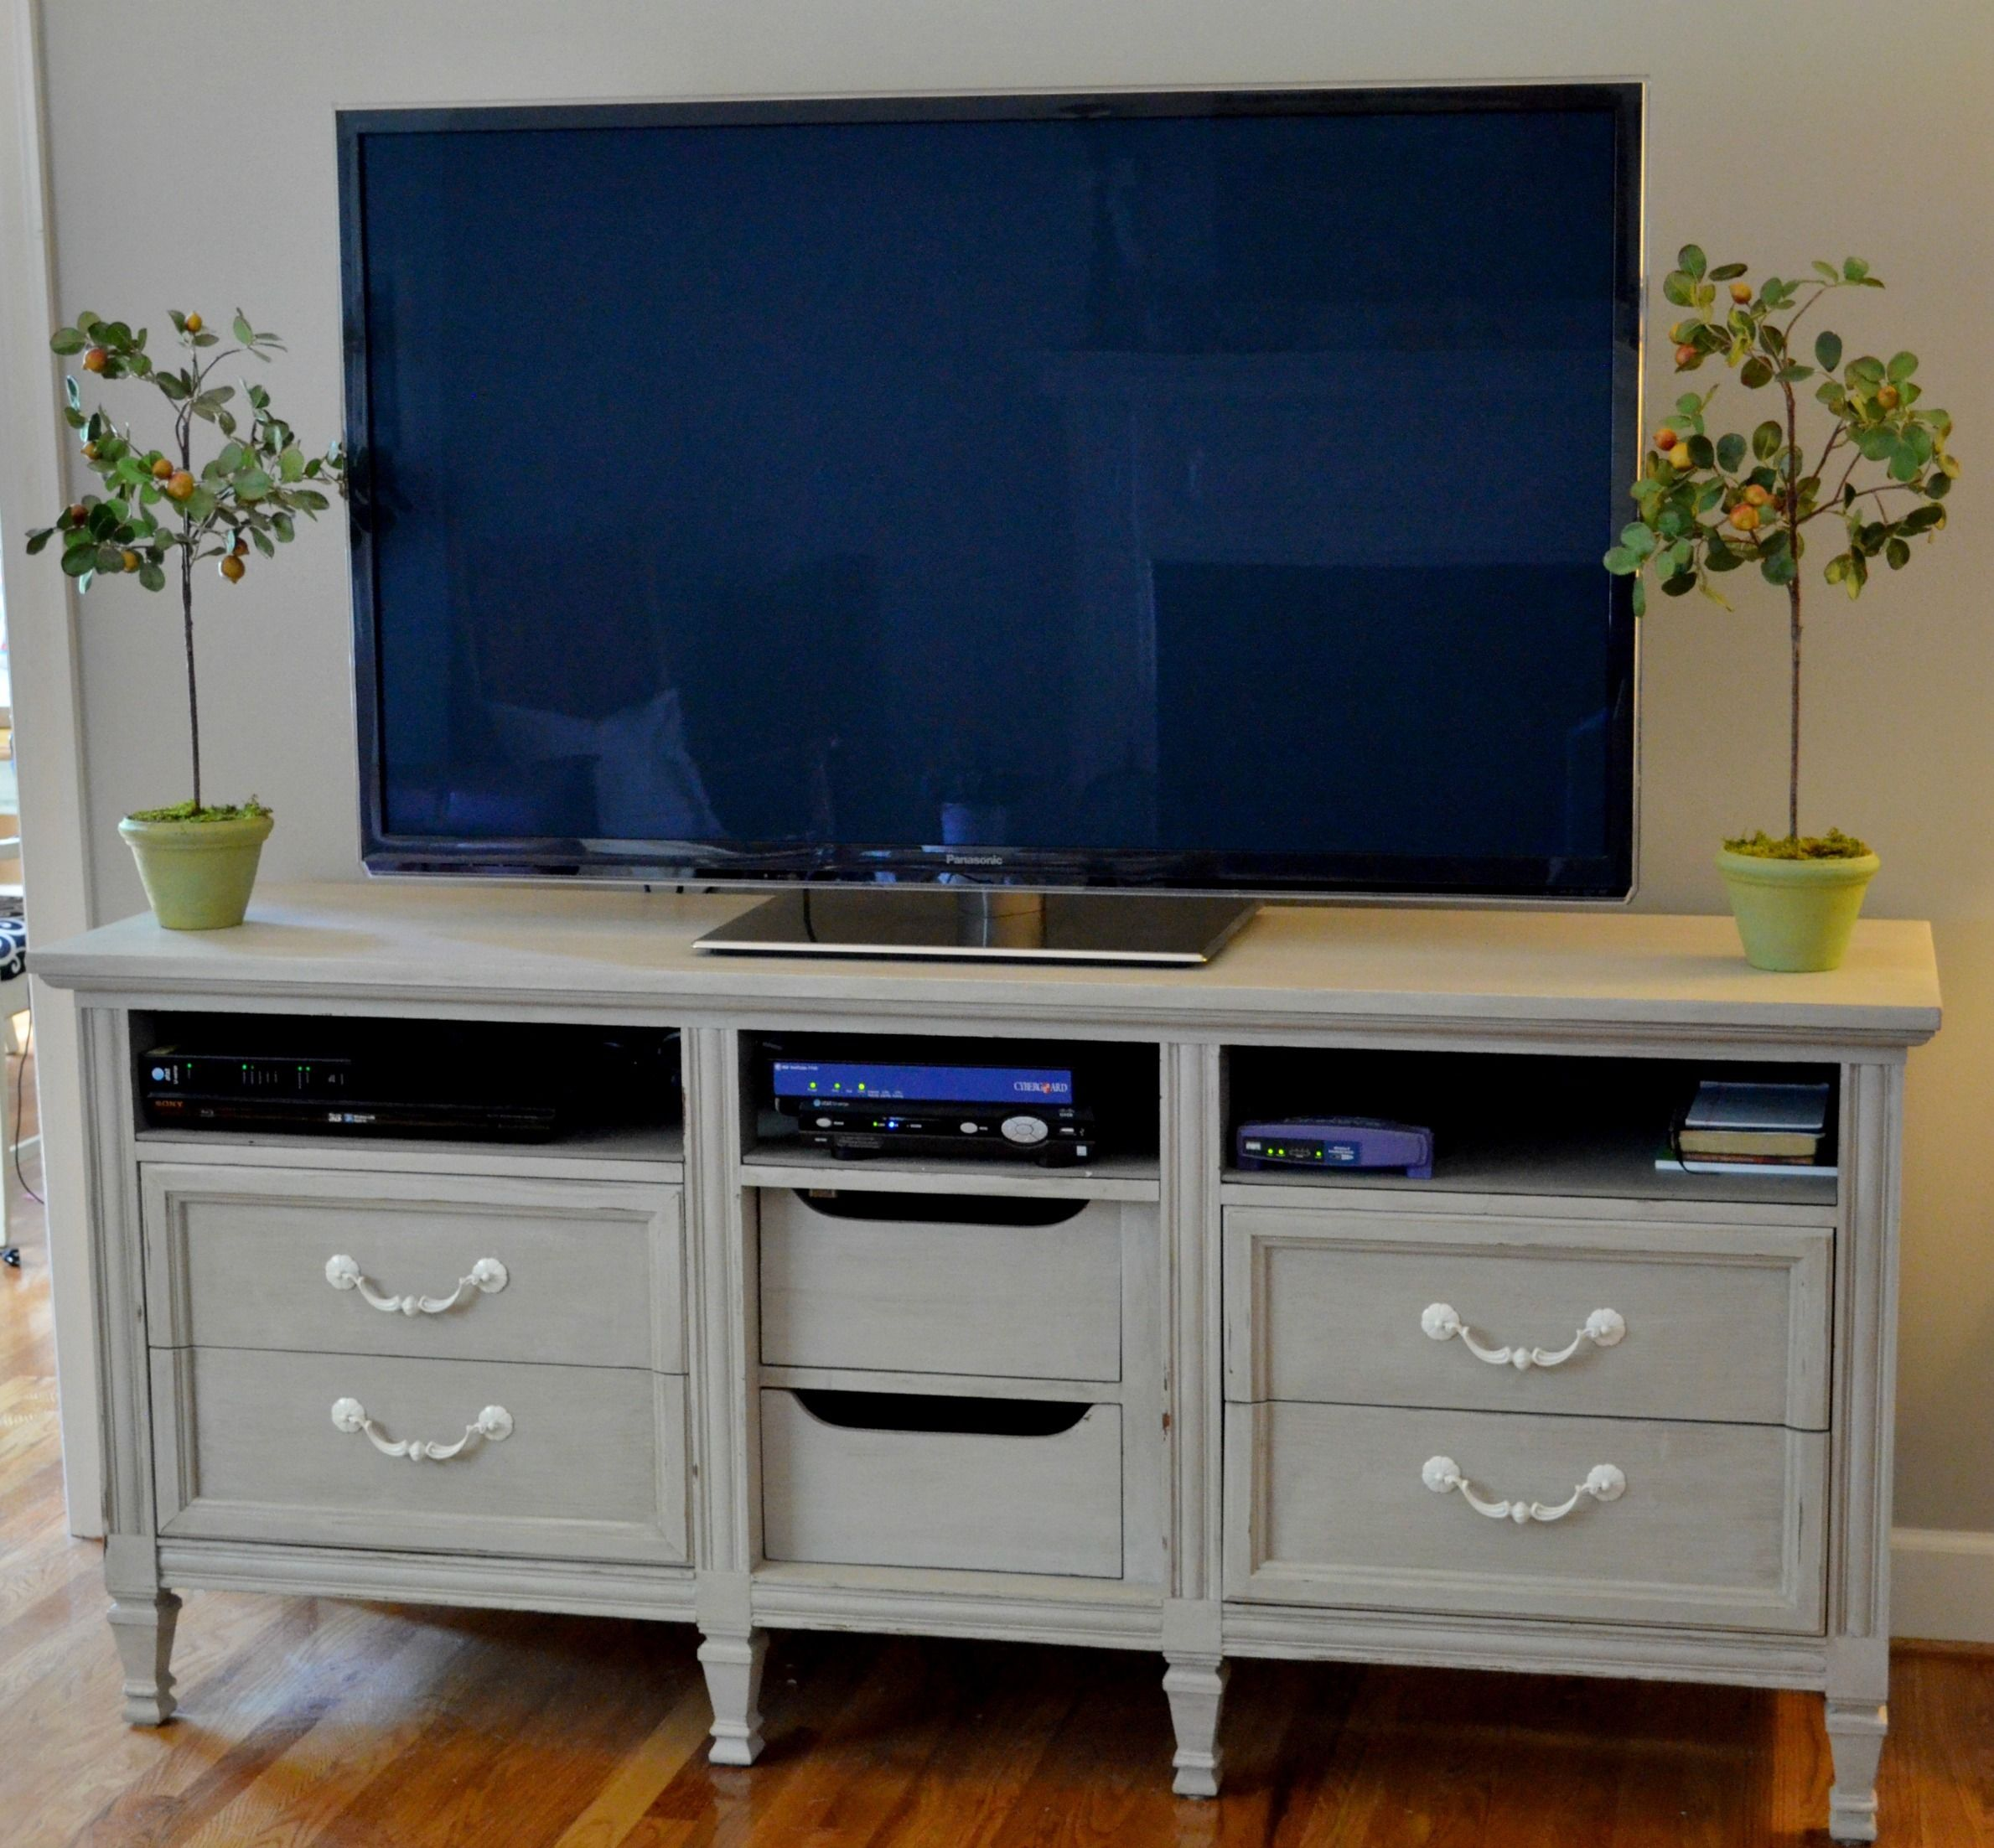 Repurpose Furniture How To Turn A Dresser Into A Tv Stand